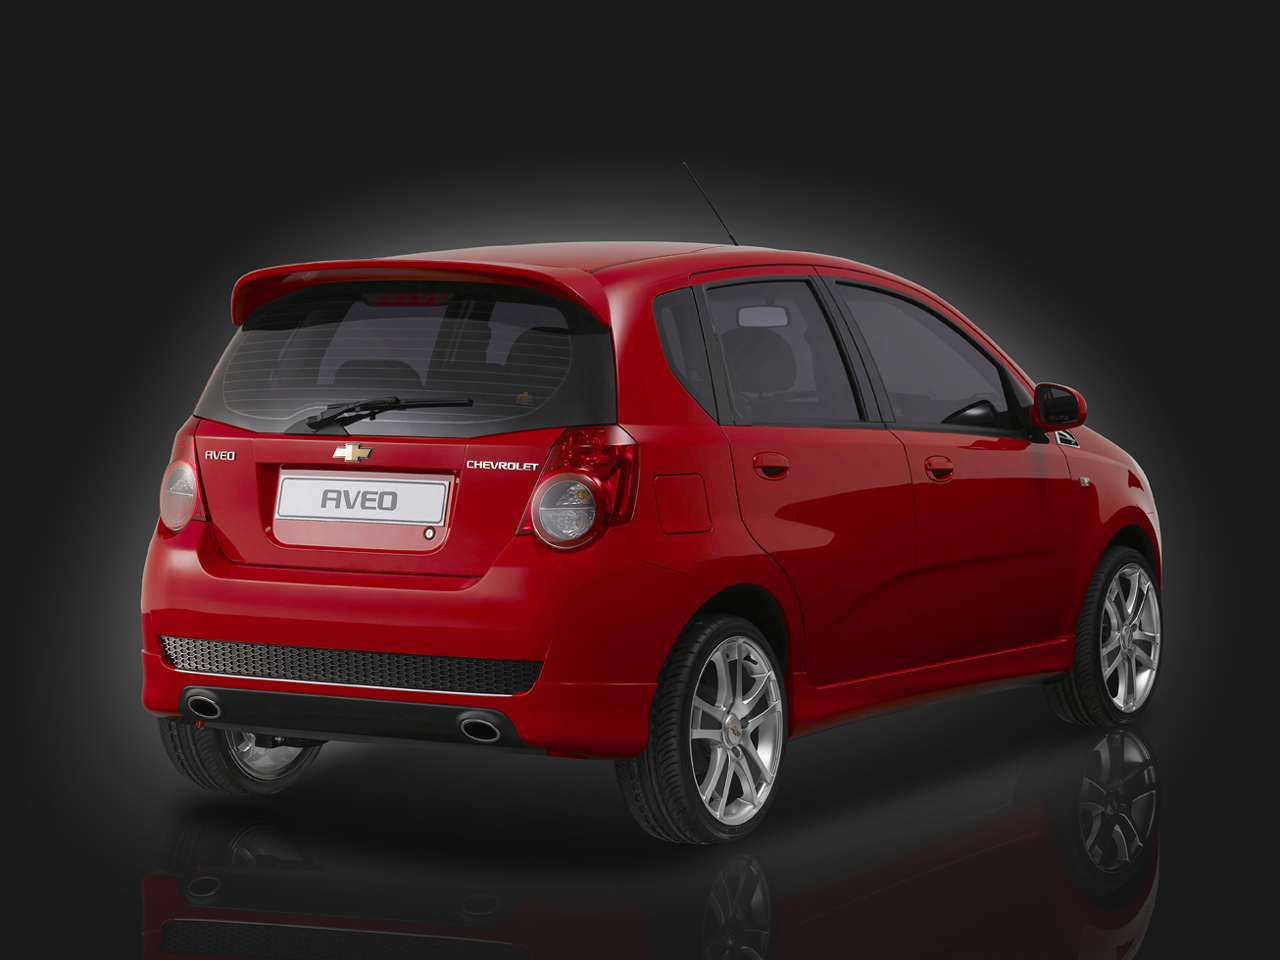 Chevrolet General Motors Gm Aveo U Va India Quarter View